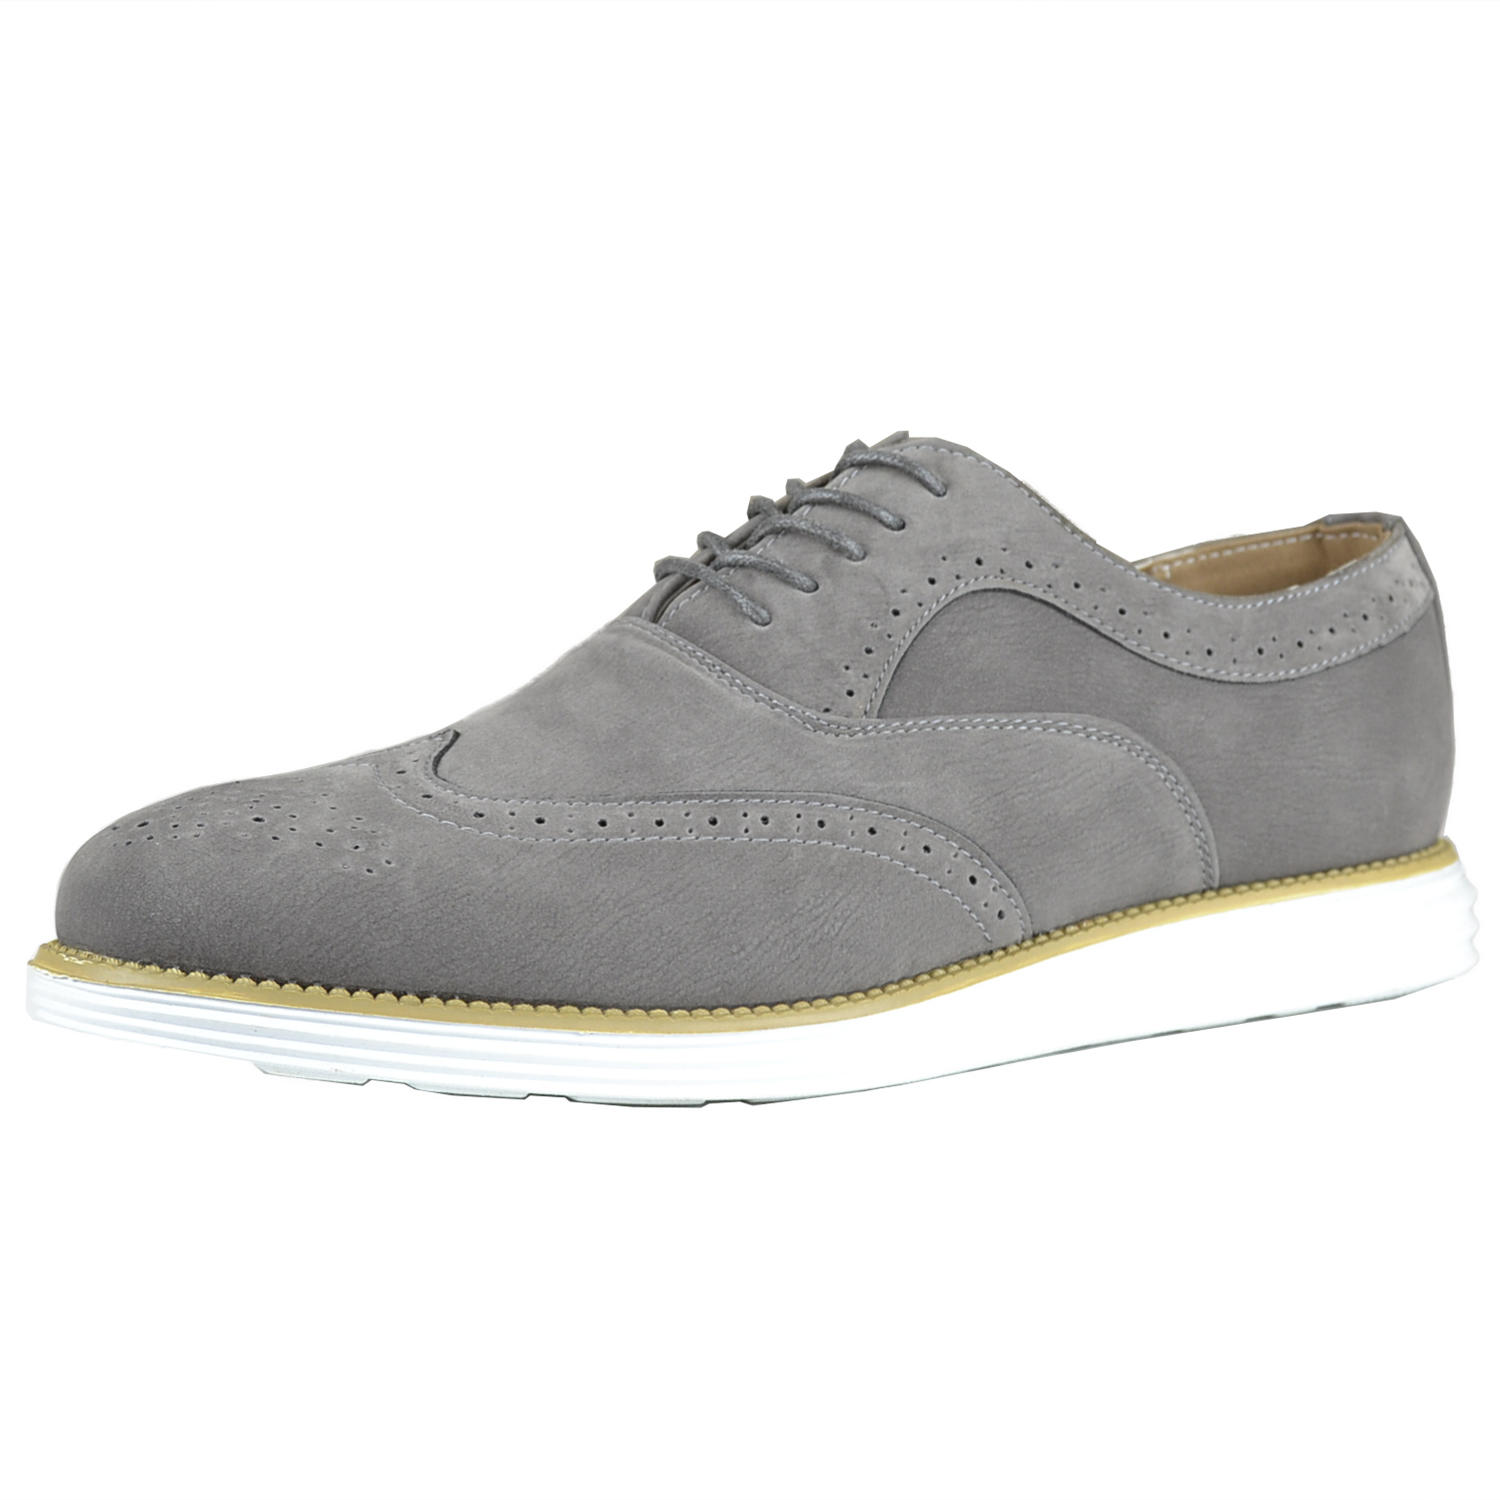 mens casual shoes lace up oxford derby from k stores usa